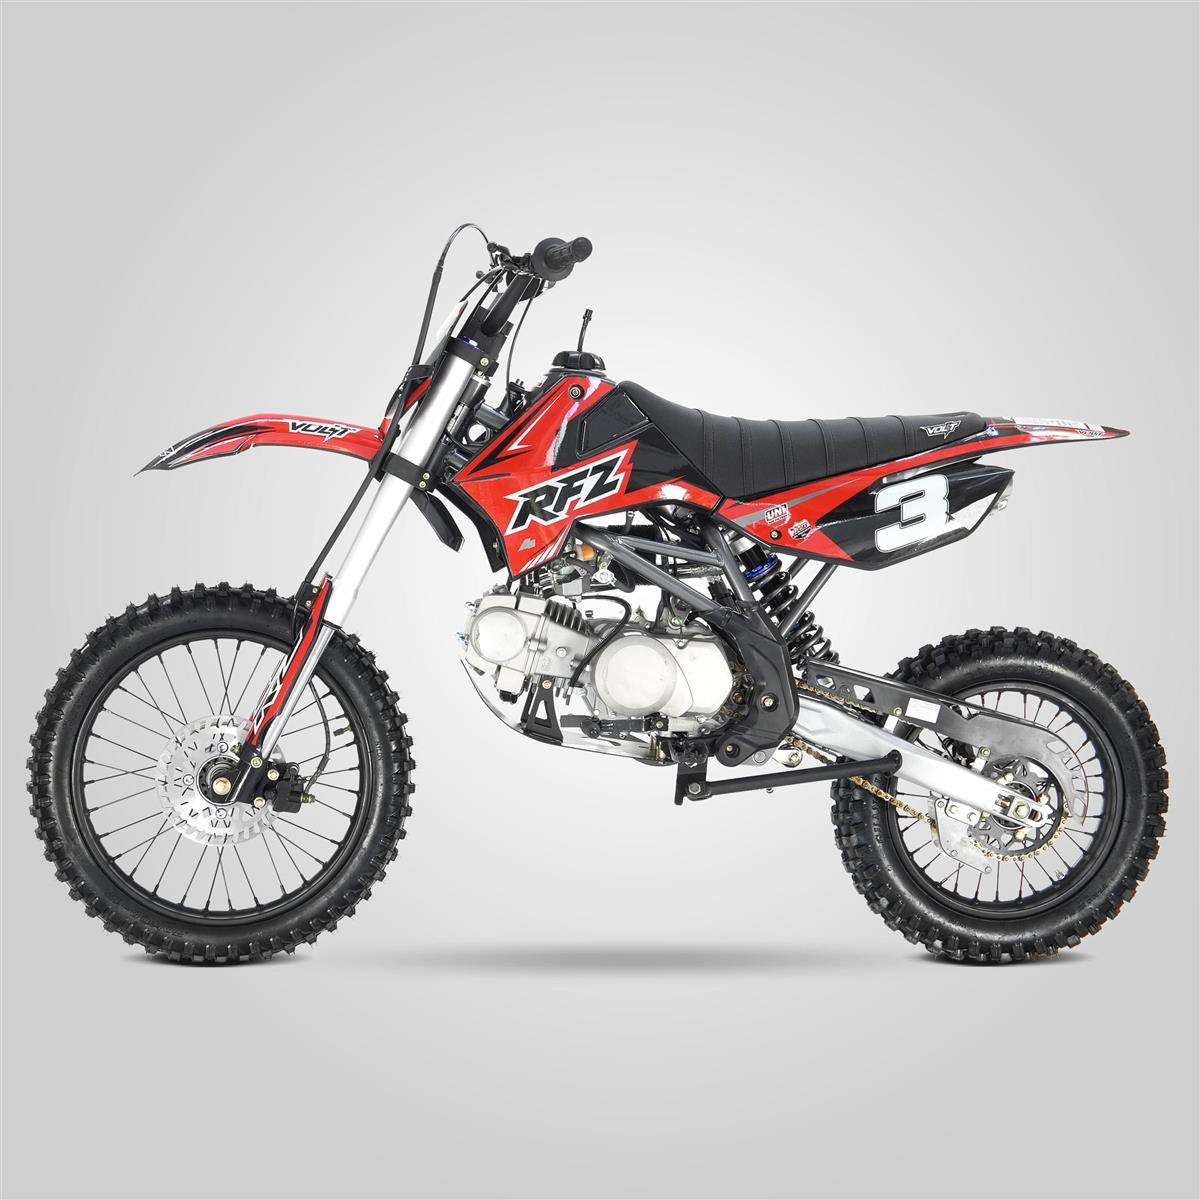 dirt bike 125cc rfz apollo motors 2018 smallmx dirt. Black Bedroom Furniture Sets. Home Design Ideas